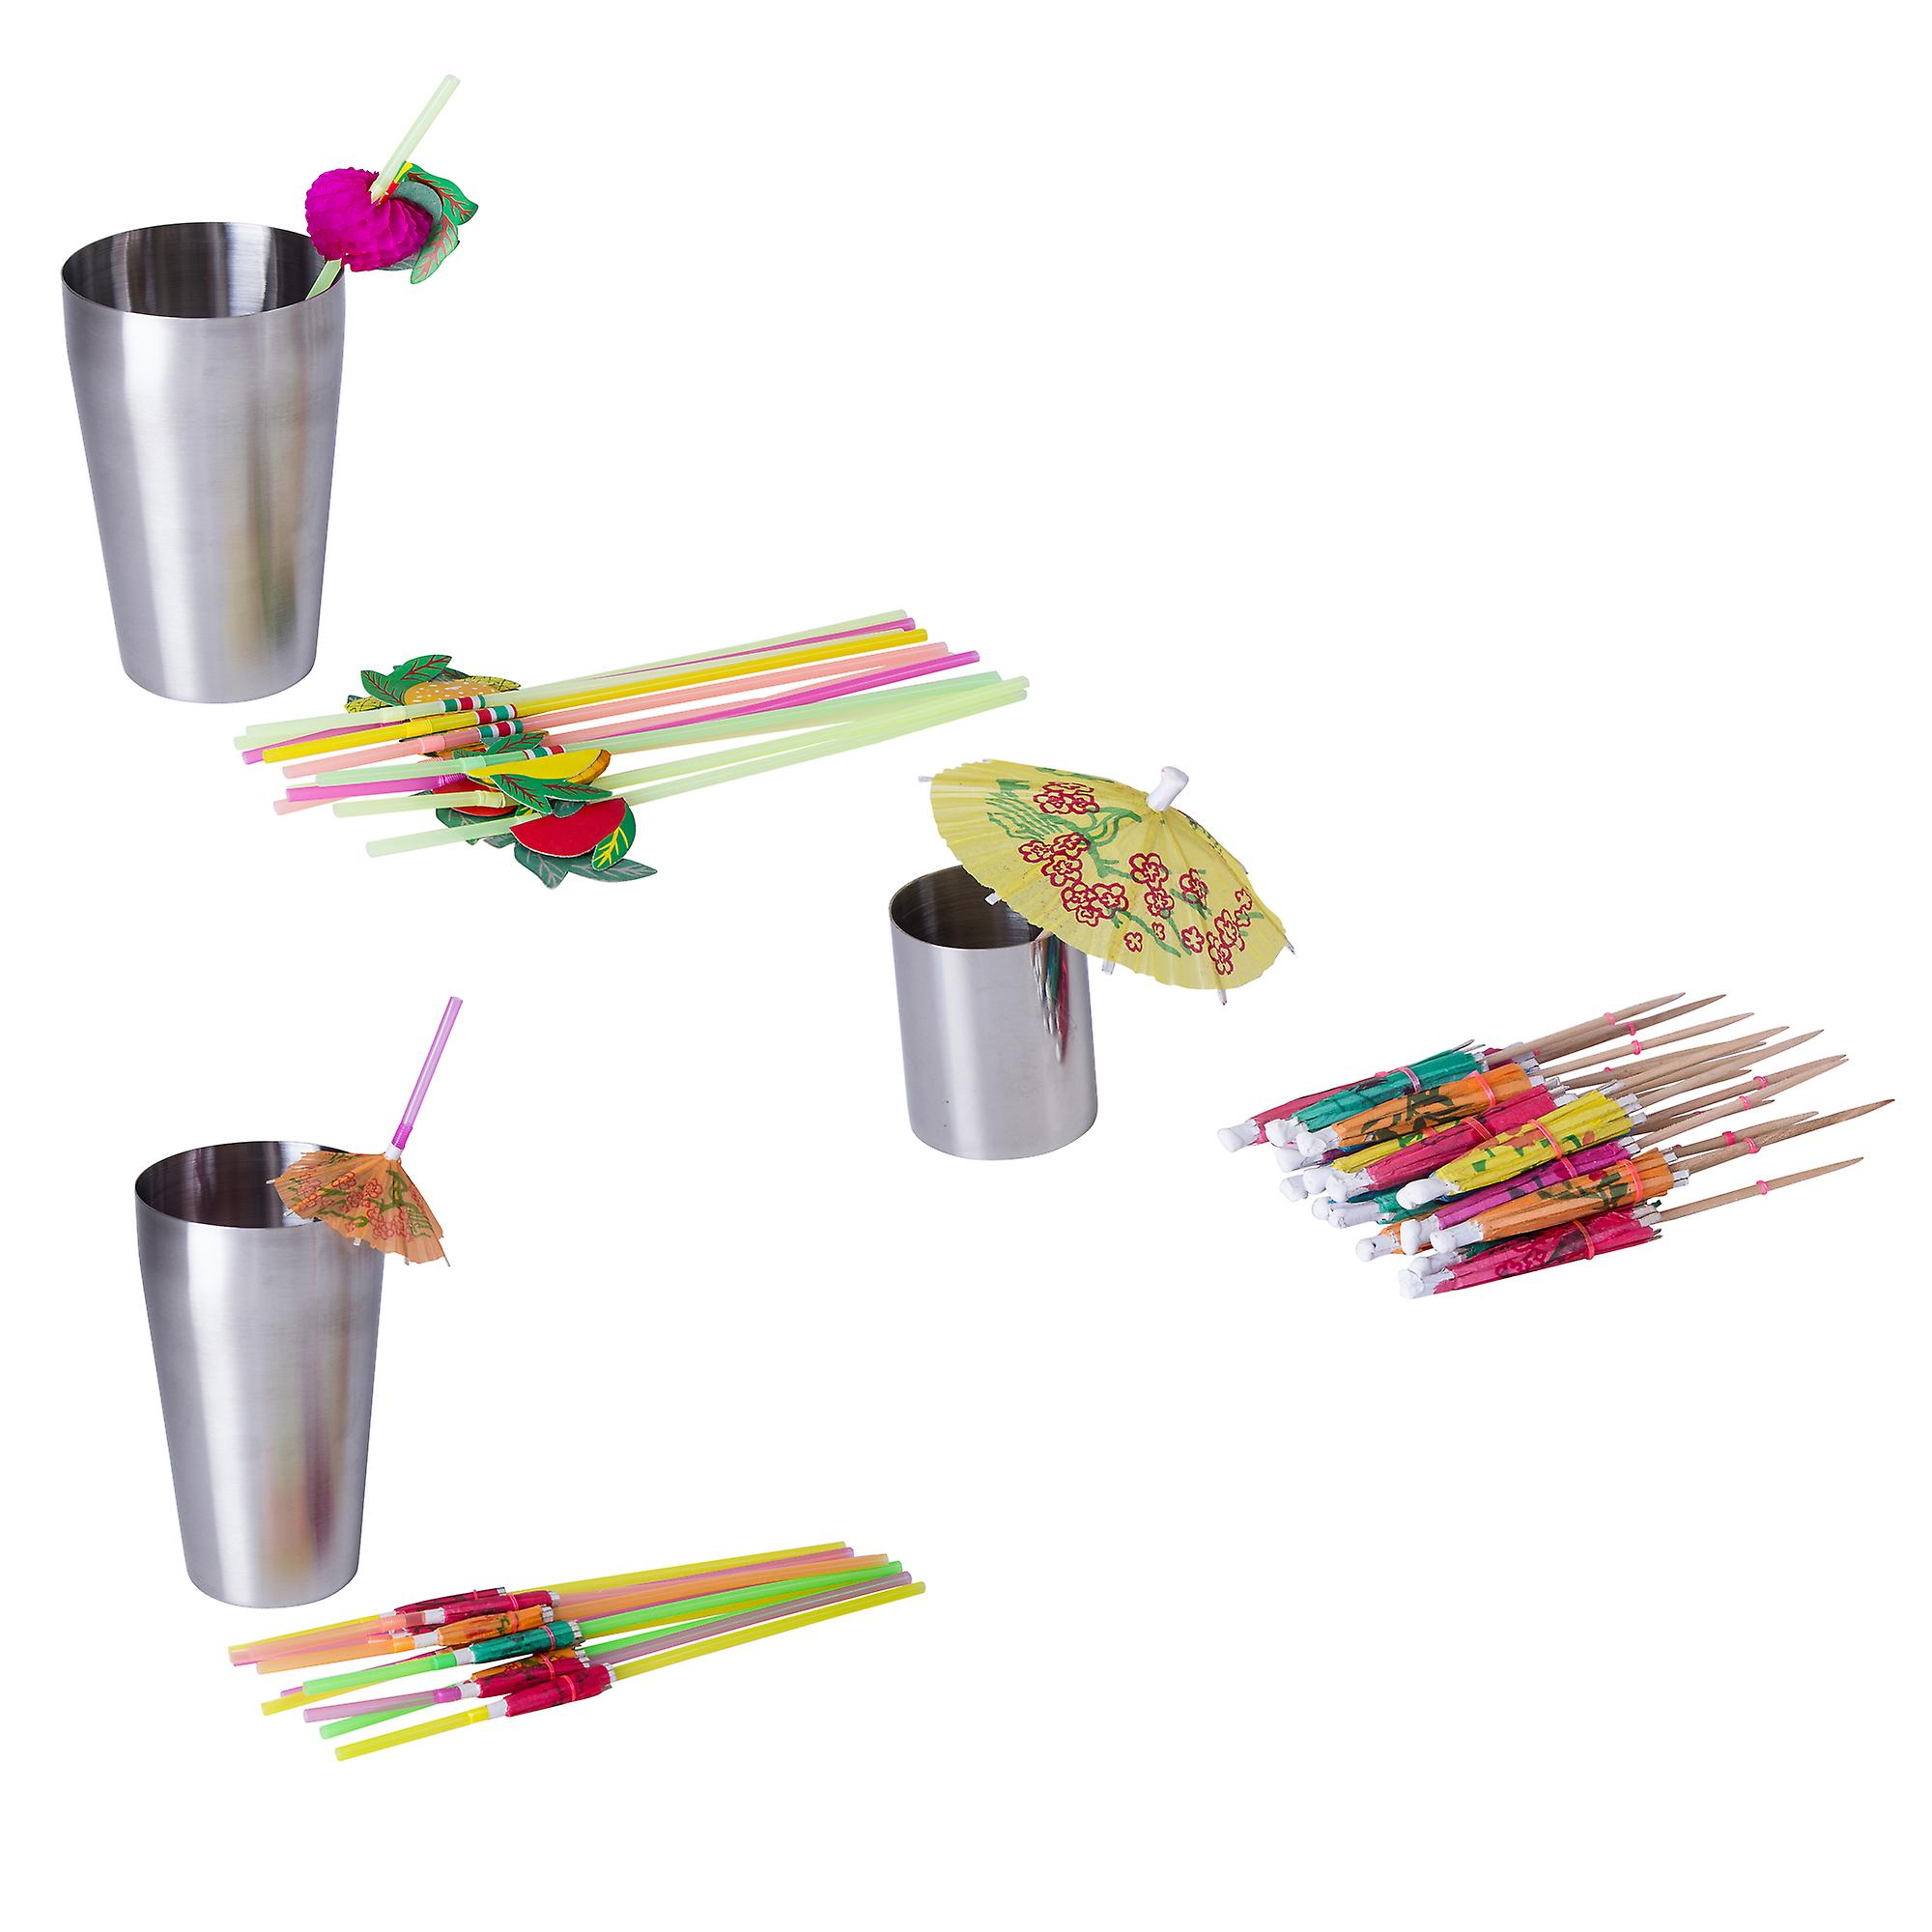 Barmix - 56pcs Stainless Steel Cocktail Shaker Set - 750 ML Shaker Cup Strainer Twisted Mixing Bar Spoon 25ml + 50ml Measuring Cups a Jiggle  Strainer  Muddler Knife Ice Bucket and Tongs 24 Hawaiian Straws 3D Round Ice Ball Mold  + FREE Ideas Booklet with 1000 Divine Recipes